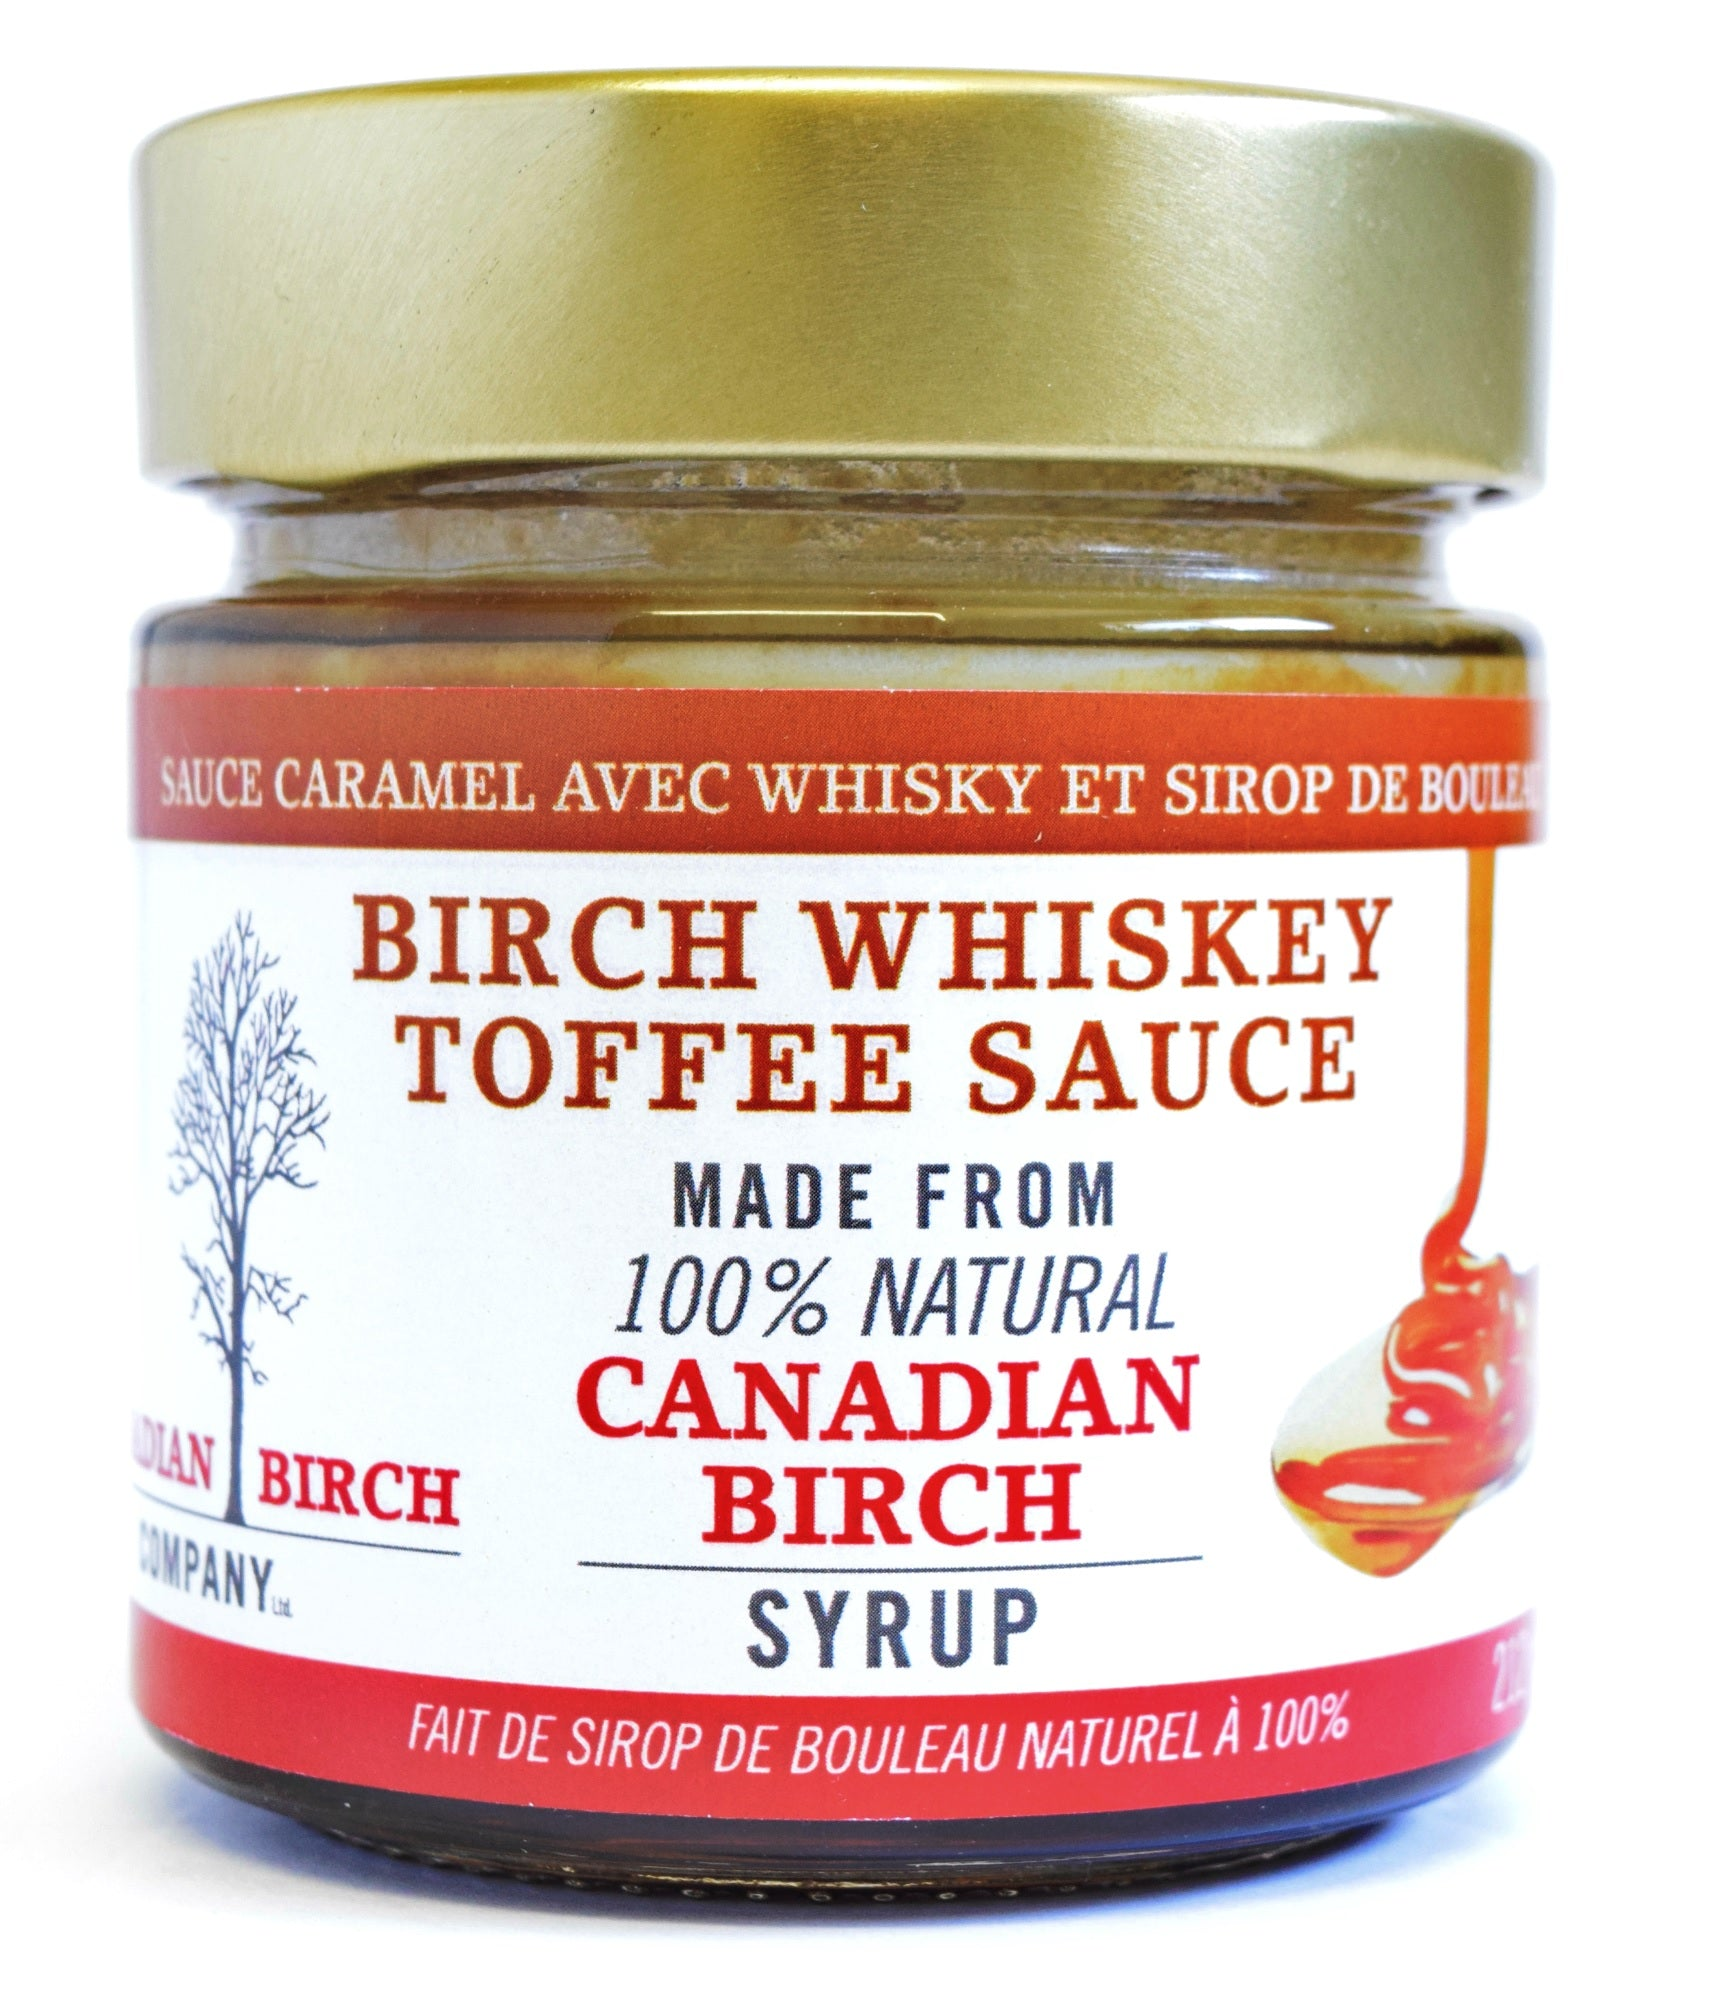 Birch Whiskey Toffee Sauce 212ml By The Canadian Birch Company